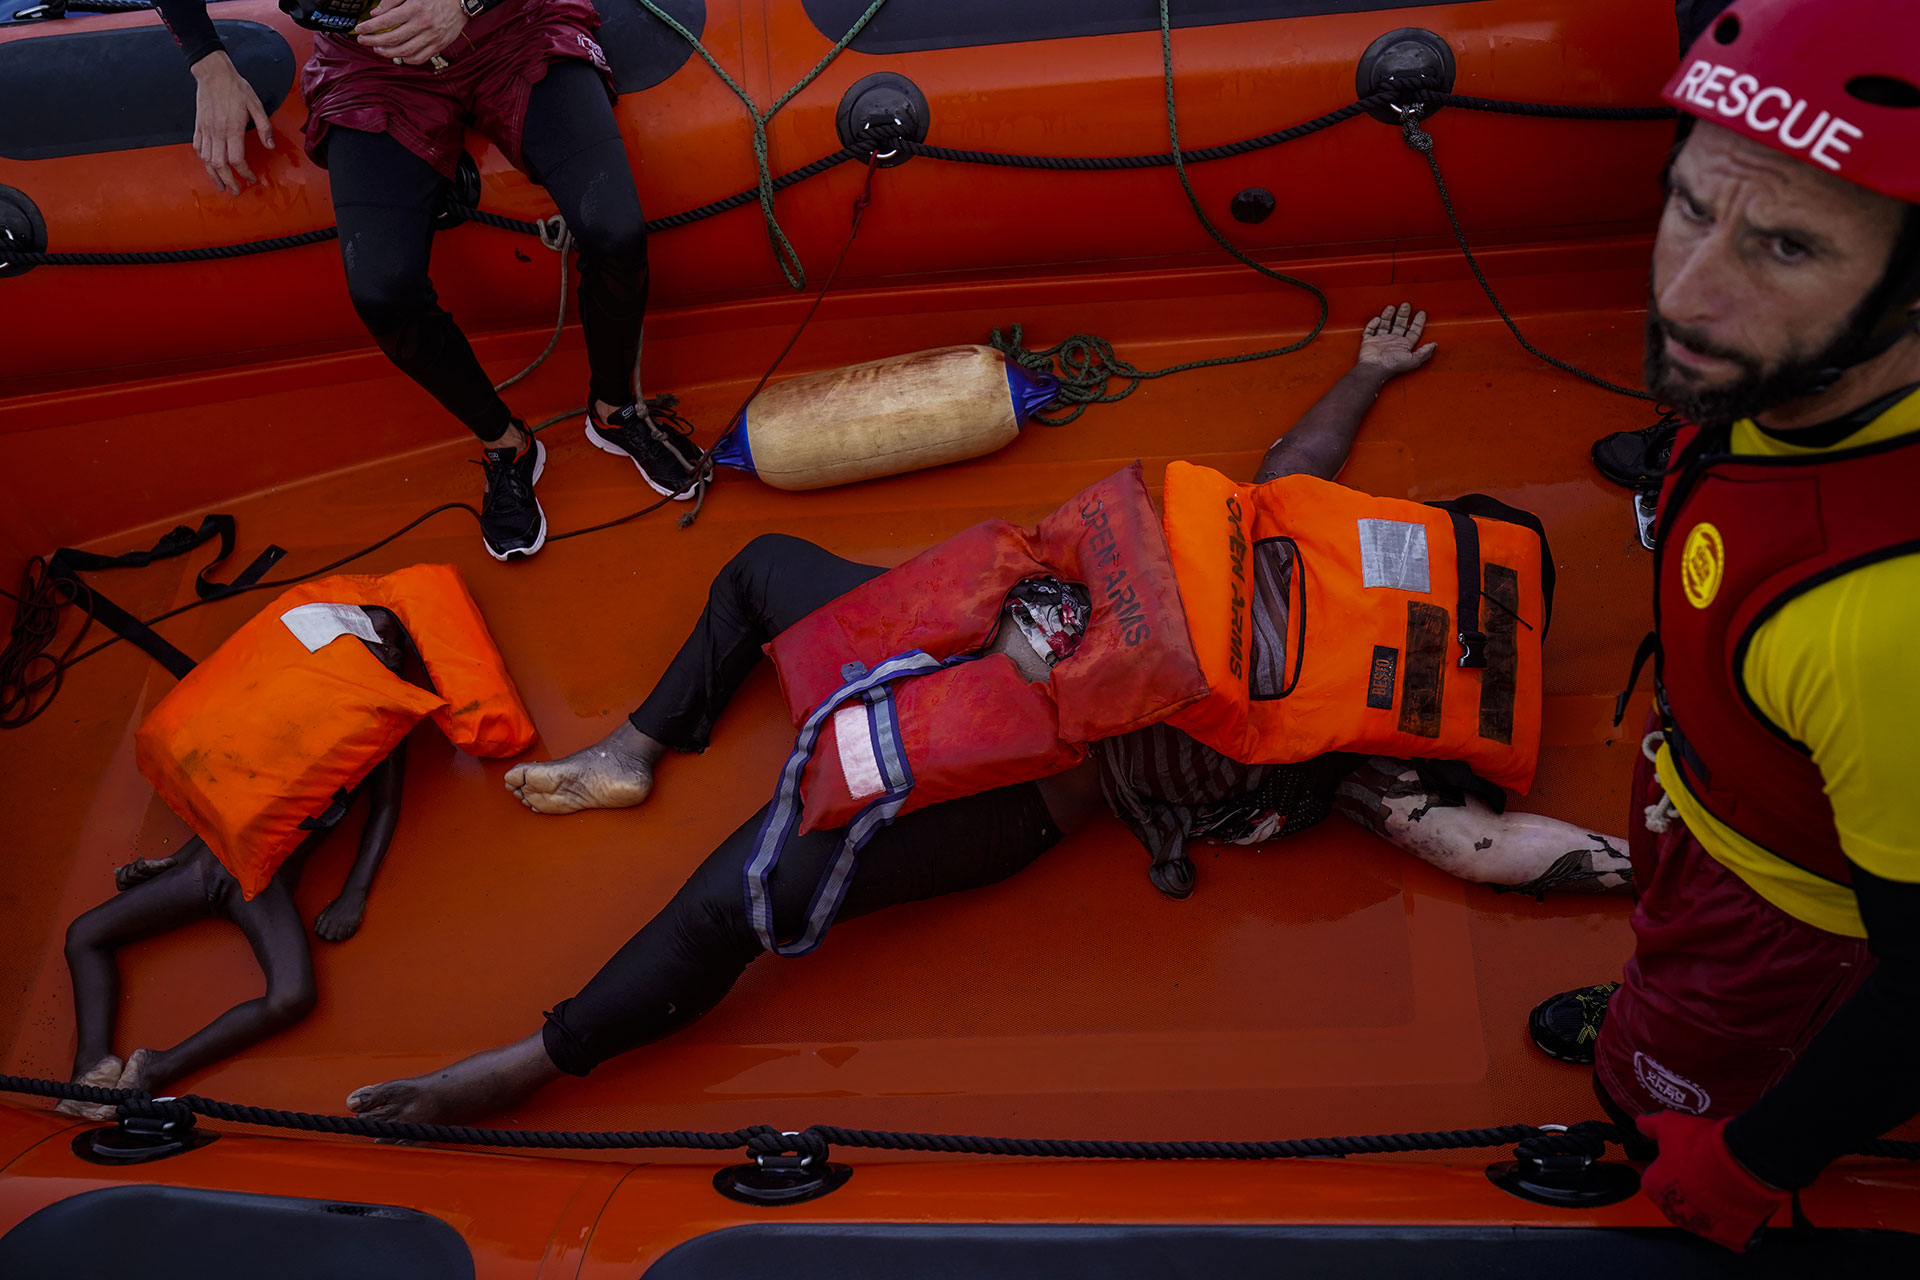 The bodies of a young boy and a woman remain on the deck of one of the boats after the rescue operation by Proactiva Open Arms in the central Mediterranean Sea, 17 July 2018.